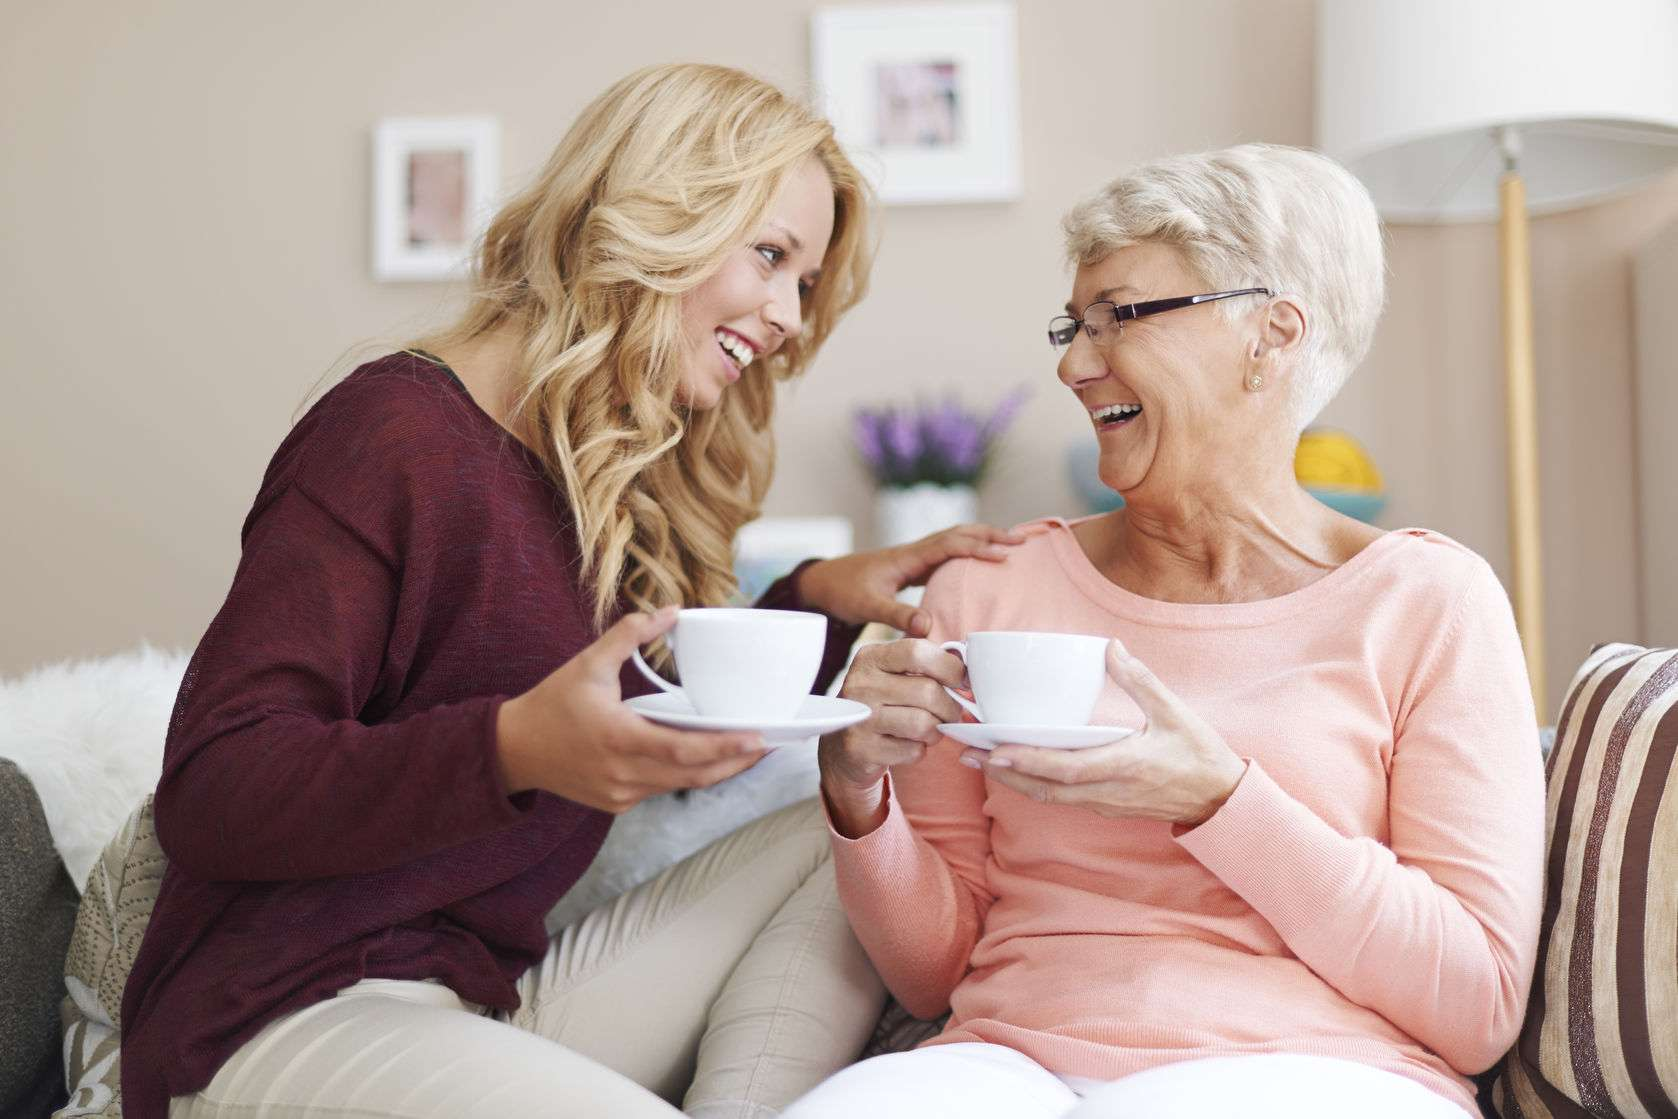 Client and caregiver drinking coffee together